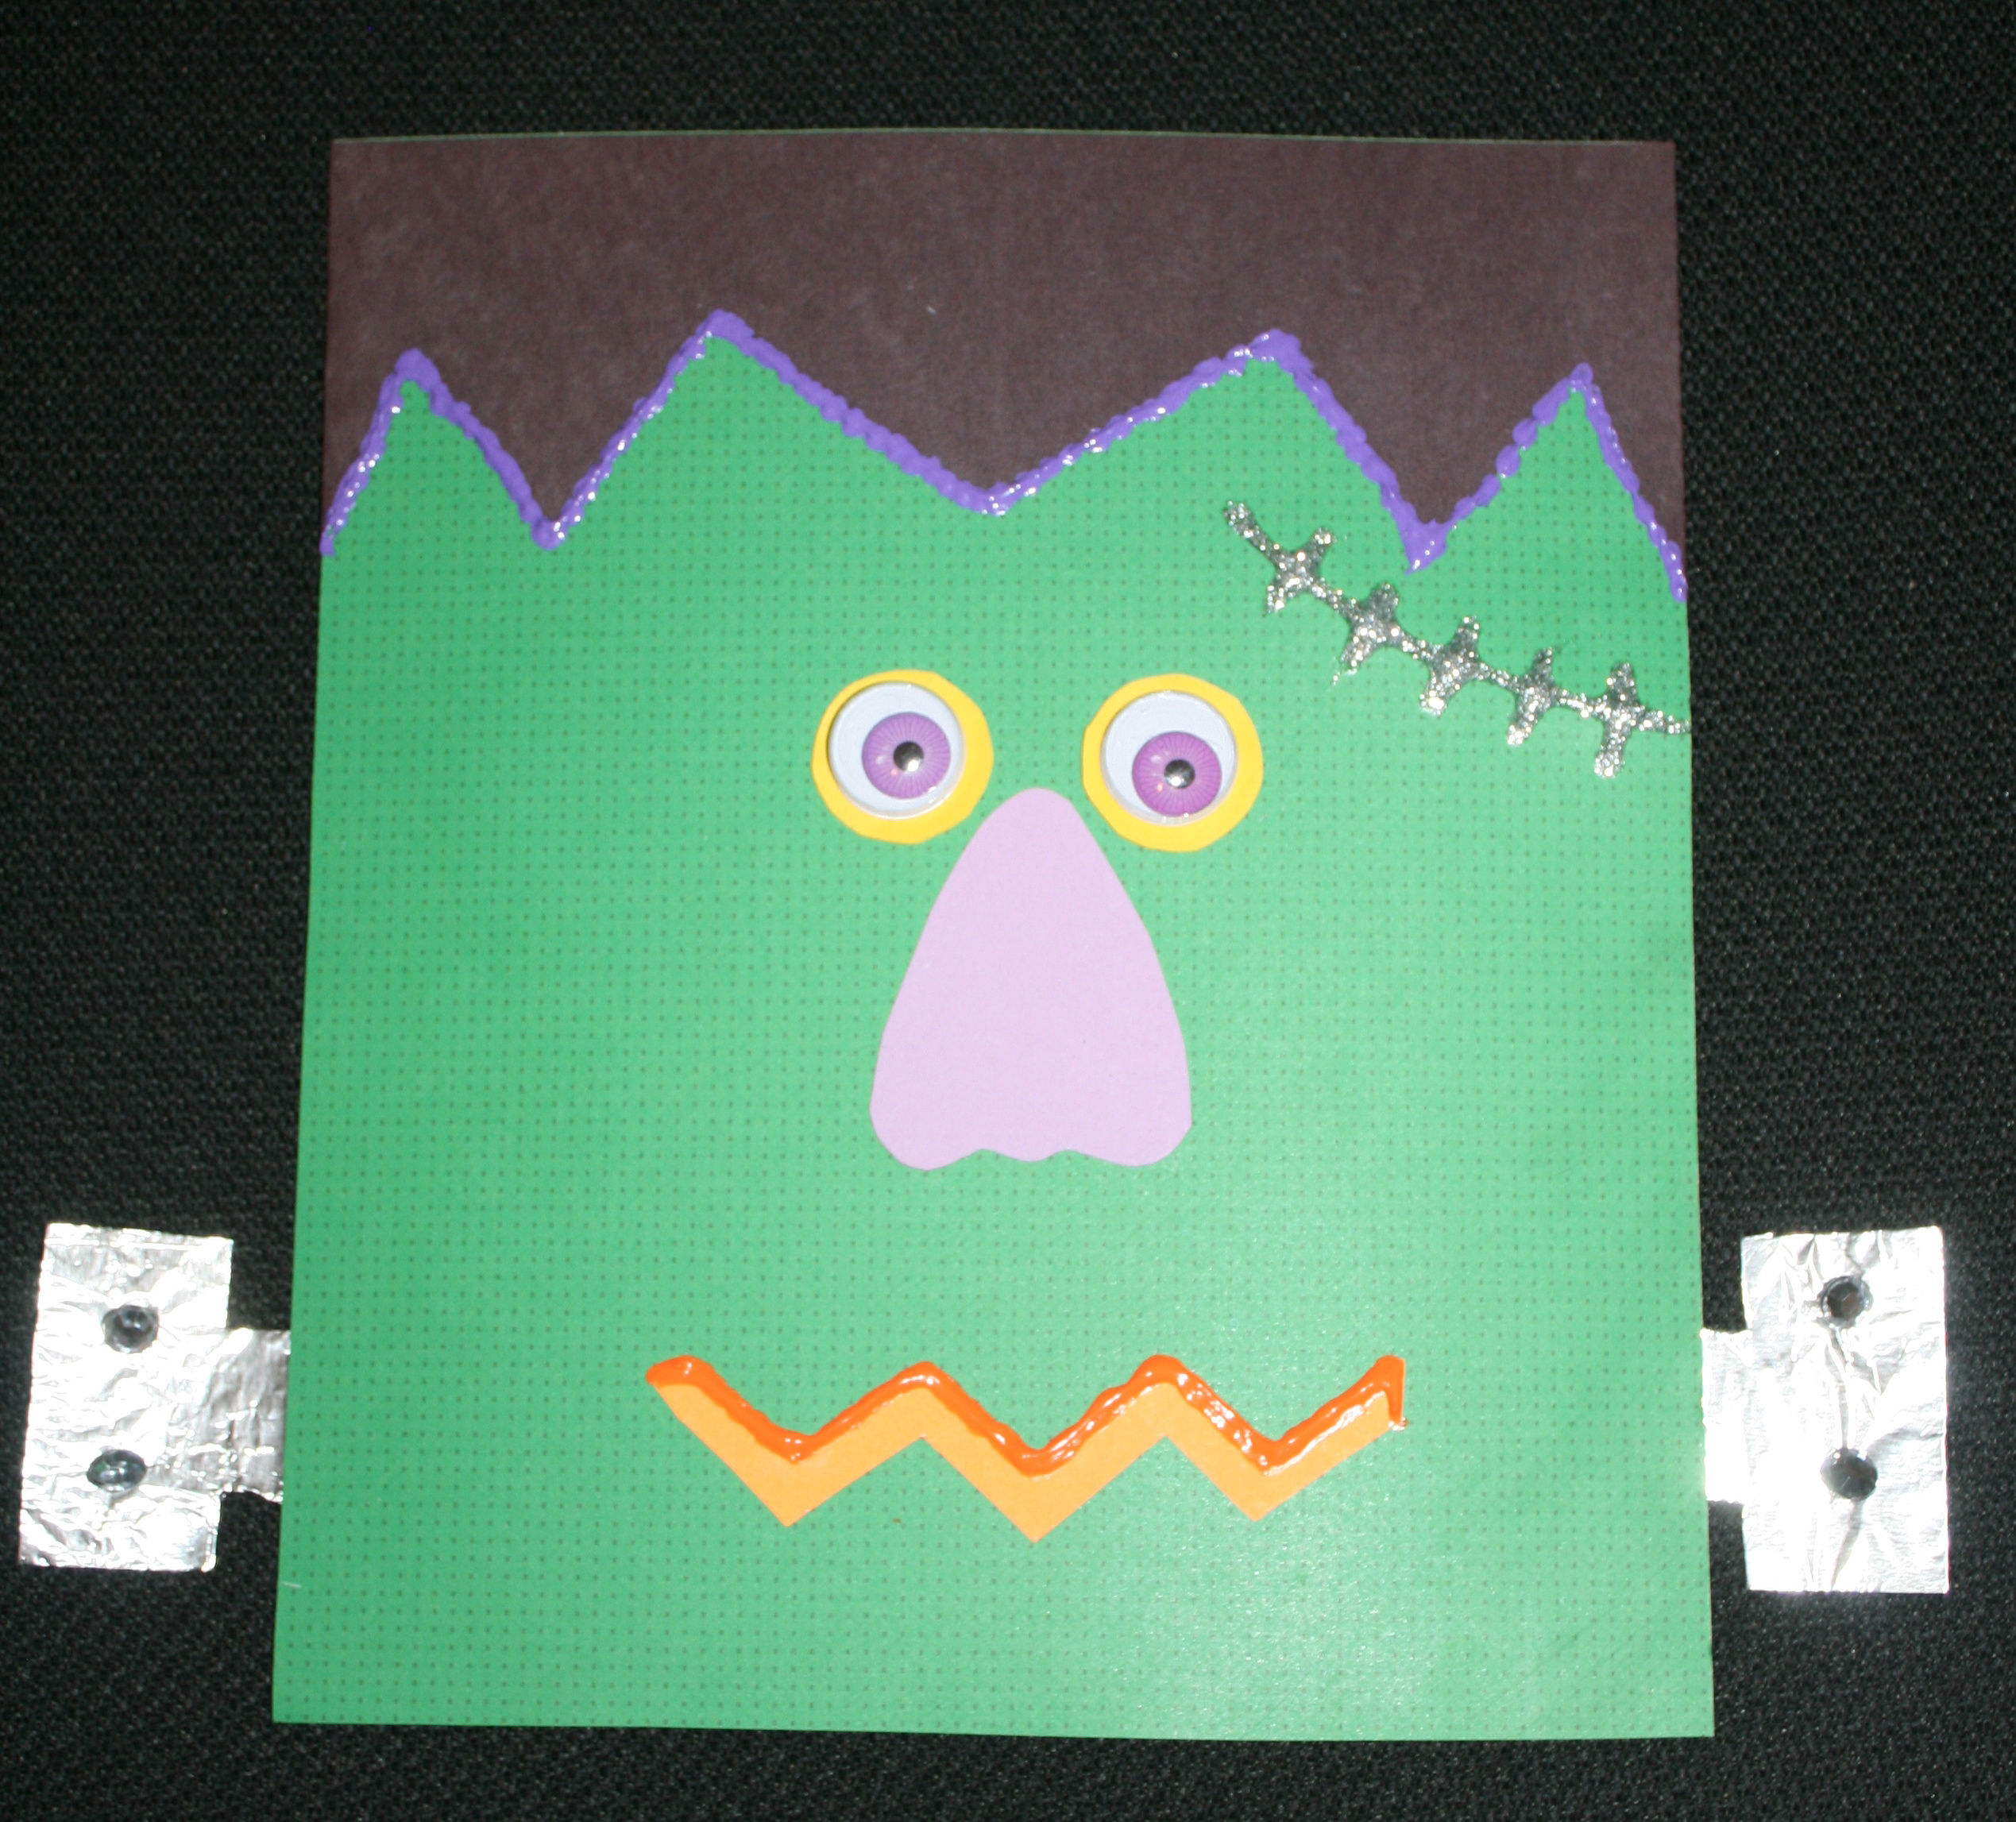 Frankenstein bag, monster ideas, monster activities, halloween ideas, halloween activities, october bulletin board ideas, halloween bulletin board ideas, glad monster sad monster ideas, glad monster sad monster activities, go away big green monster ideas, go away big green monster activities, shapes,